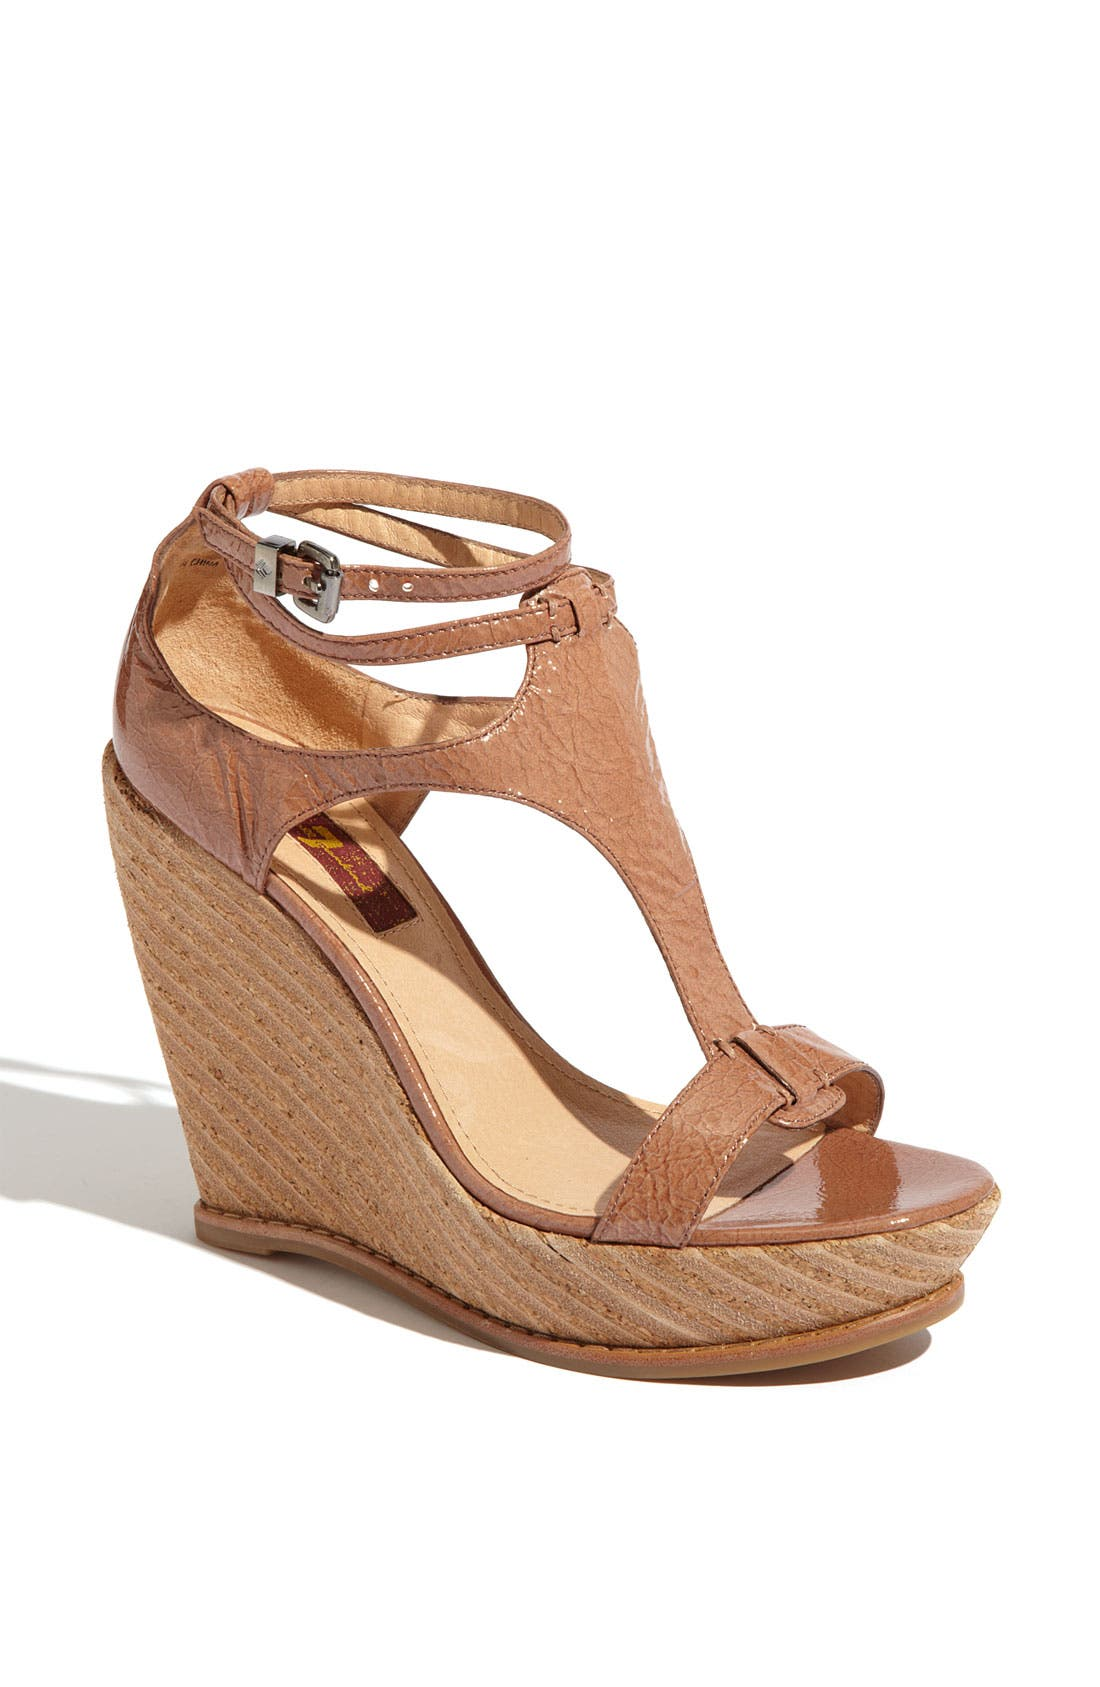 Alternate Image 1 Selected - 7 For All Mankind® 'Rayn' Wedge Sandal